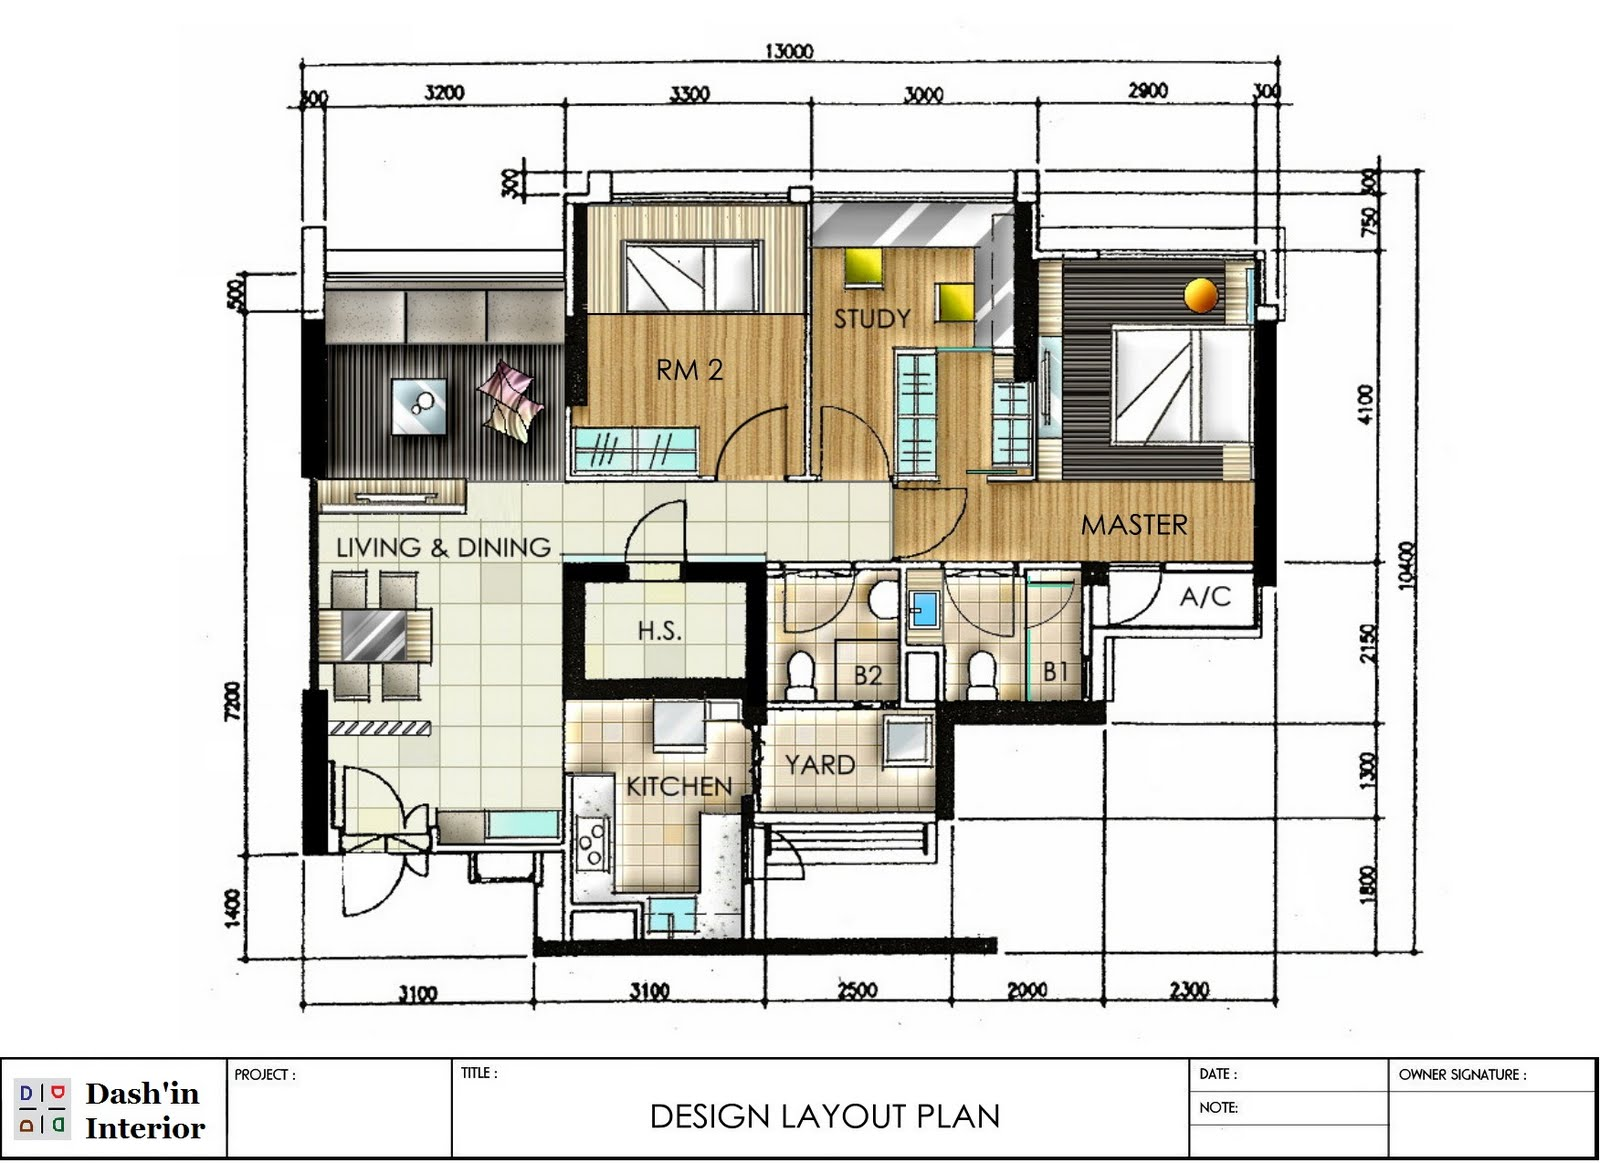 Dash 39 in interior hand drawn designs floor plan layout Bedroom furniture layout plan